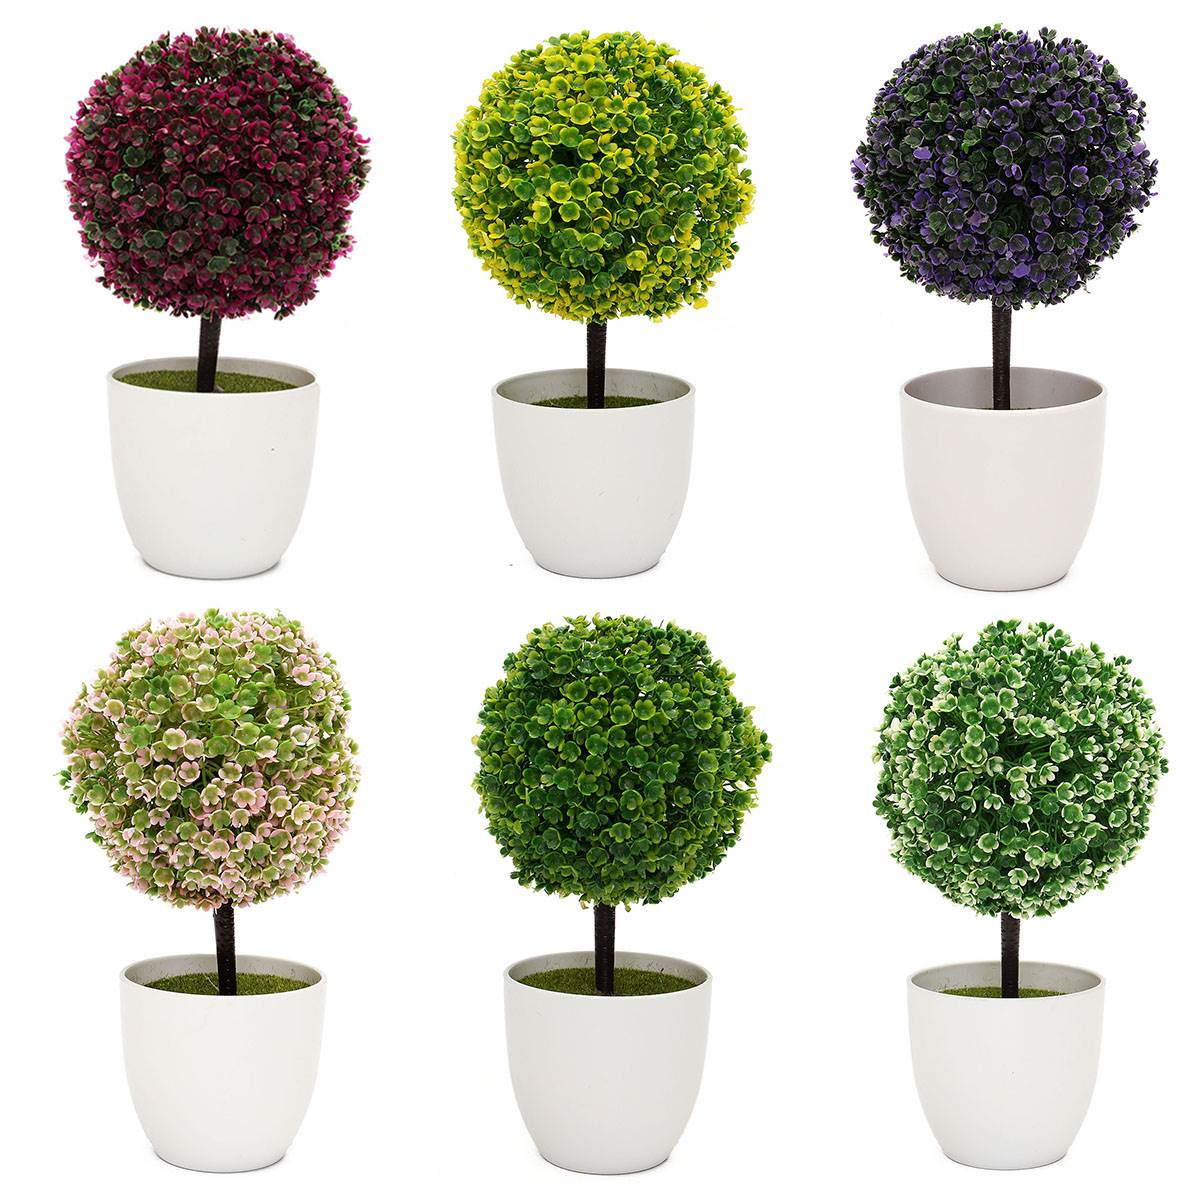 mini fake bonsai flower buxus plants in pot indoor artificial topiary tree ball for garden home artificial topiary tree ball plants pot garden